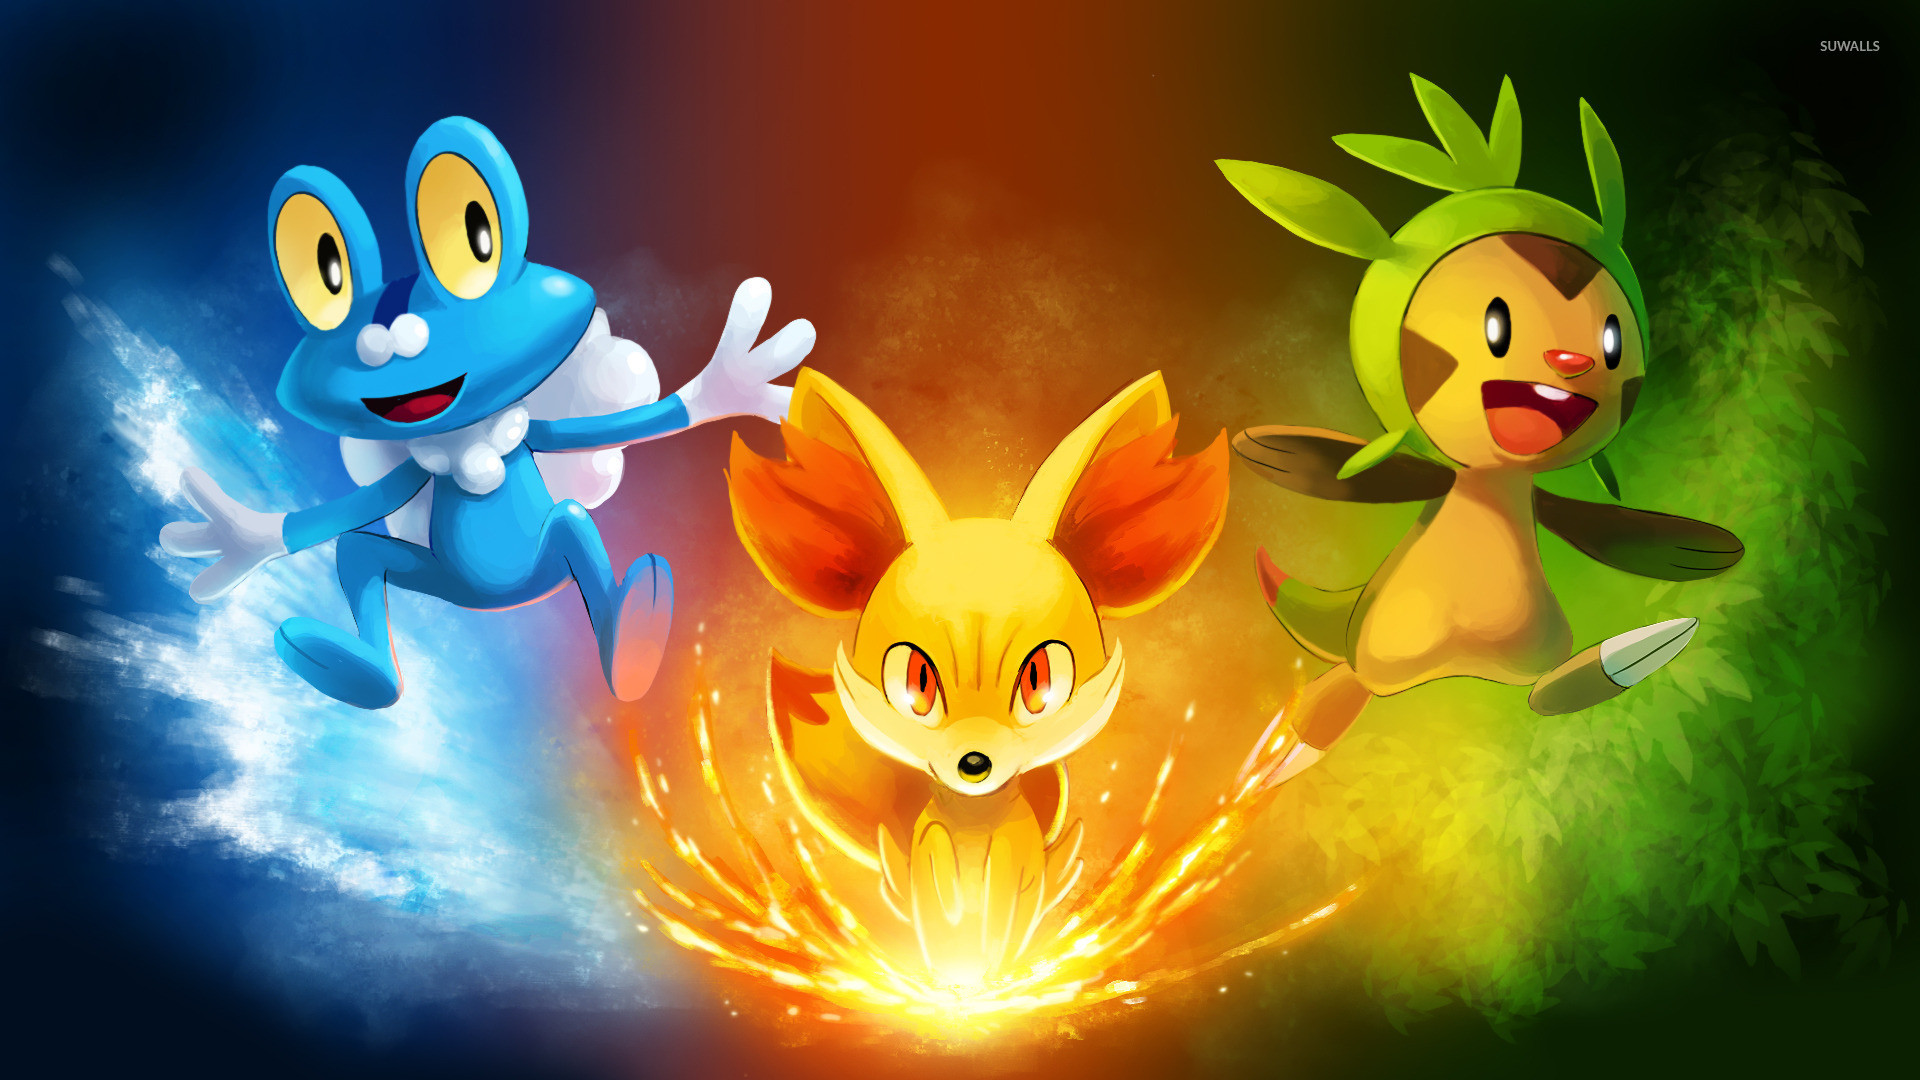 1920x1080 Pokemon X and Y wallpaper - Game wallpapers - #21692